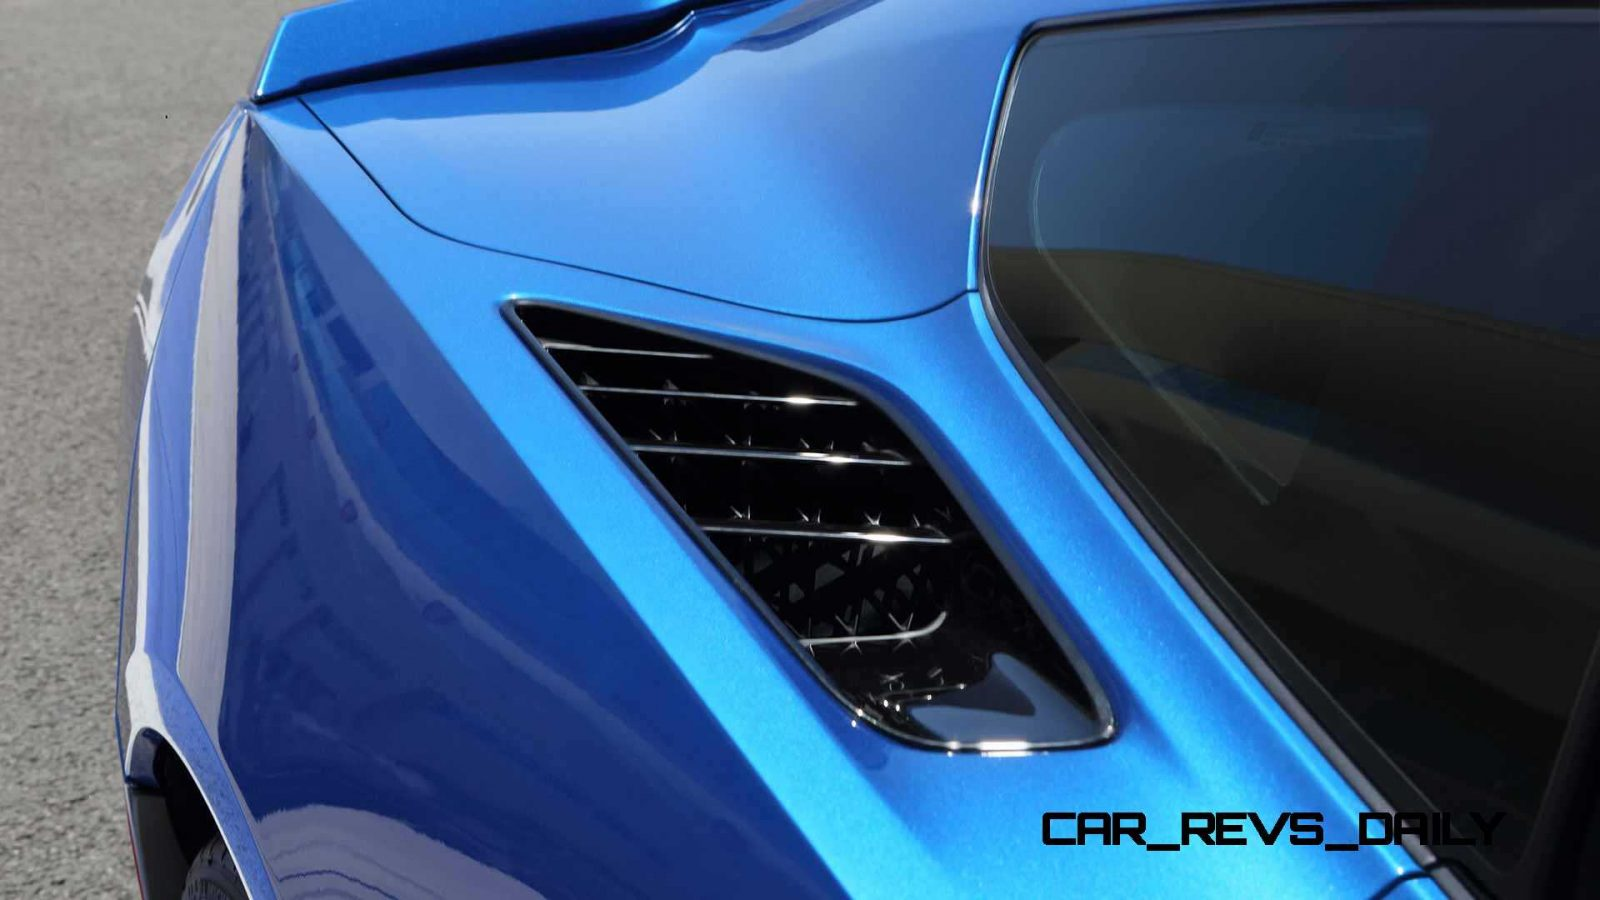 2014 Corvette Stingray Colors Gallery1